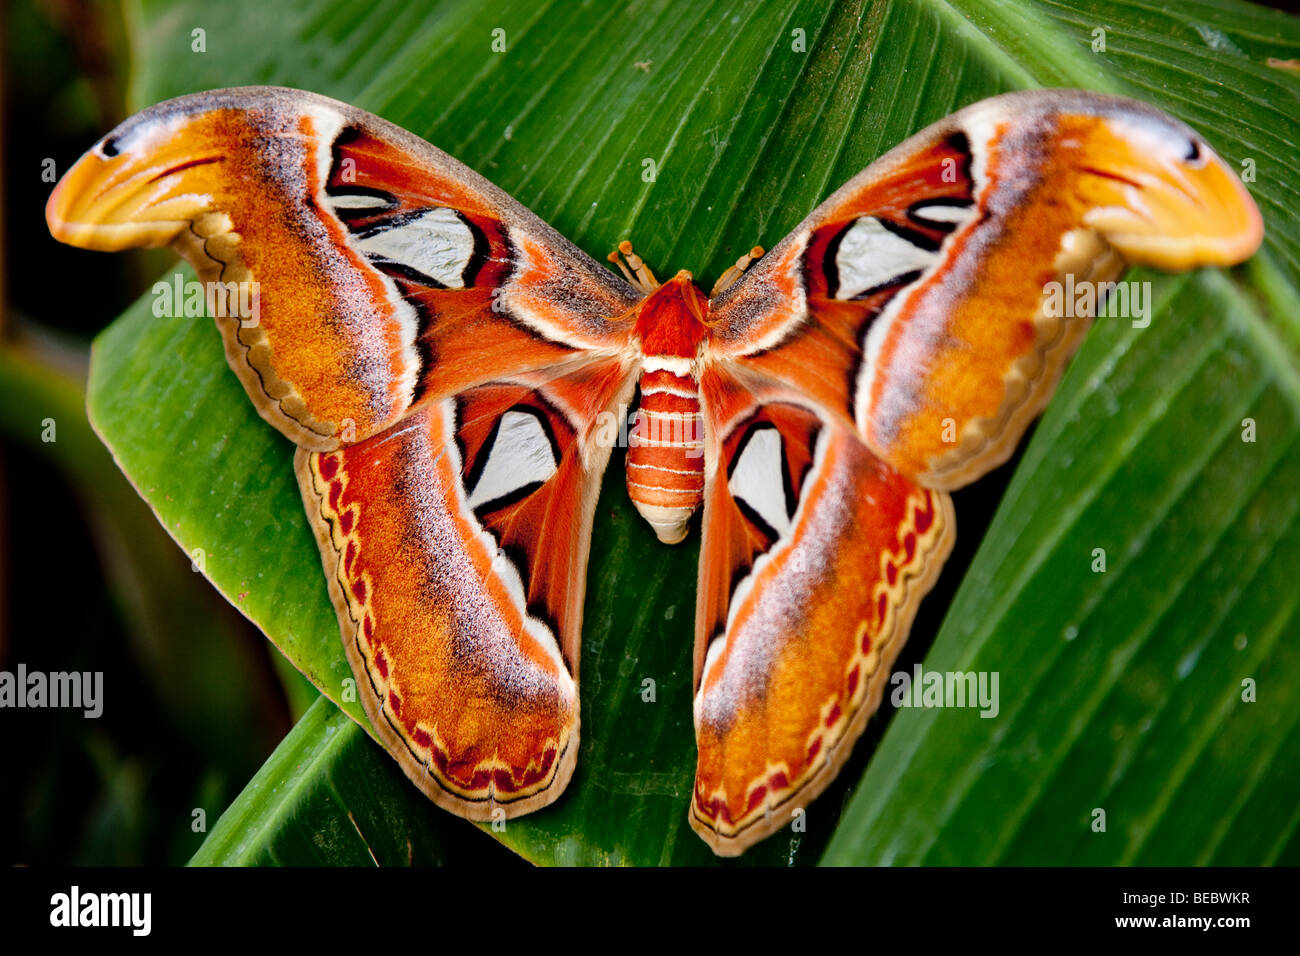 Atlas Moth (Attacus atlas), the world's largest moth - Stock Image